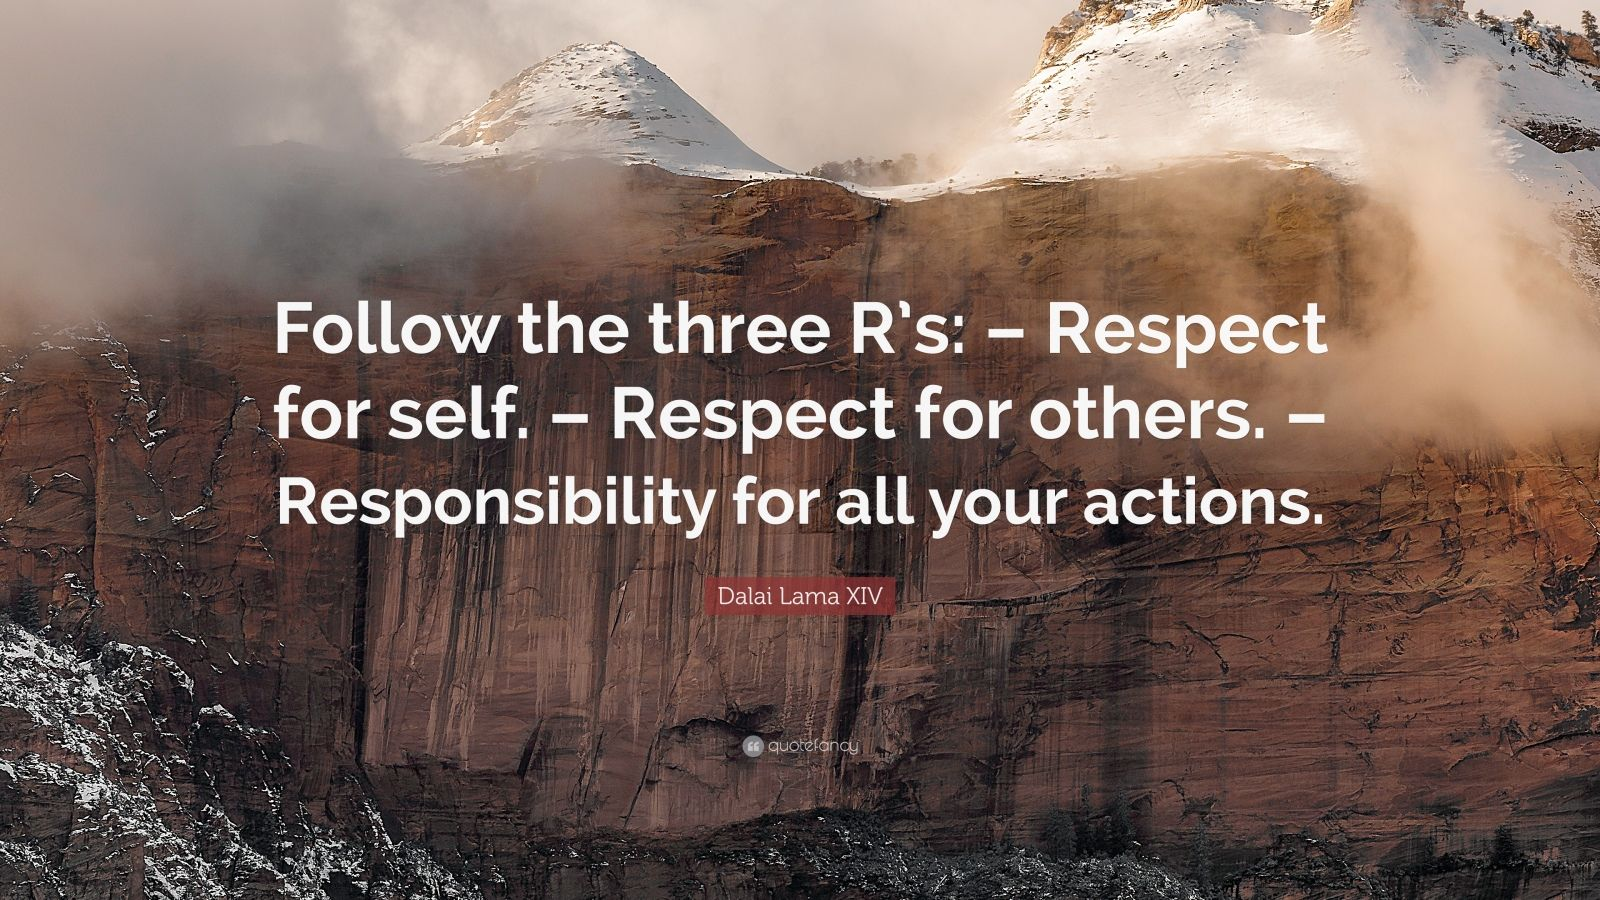 """Dalai Lama XIV Quote: """"Follow the three R's: – Respect for self. – Respect for others. – Responsibility for all your actions."""""""